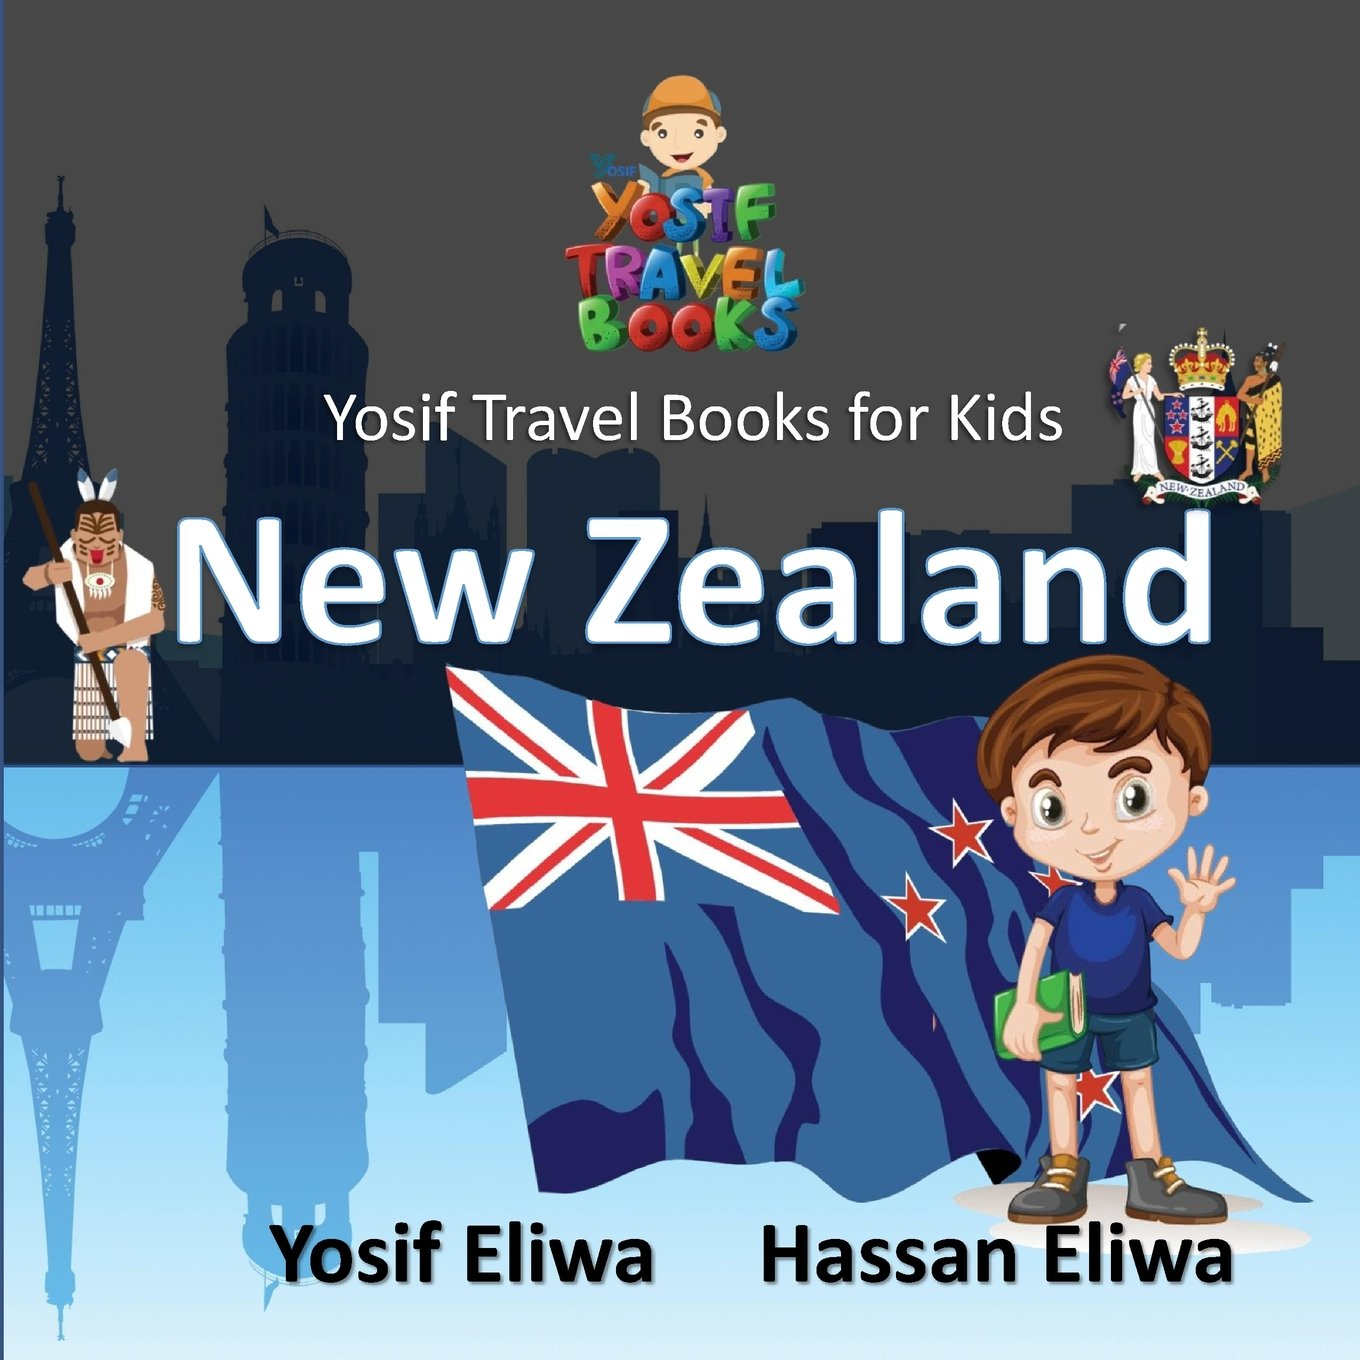 Yosif Travel Books for Kids - New Zealand: All Kids join Yosif to discover New Zealand (Yosif's Travel Books Series)